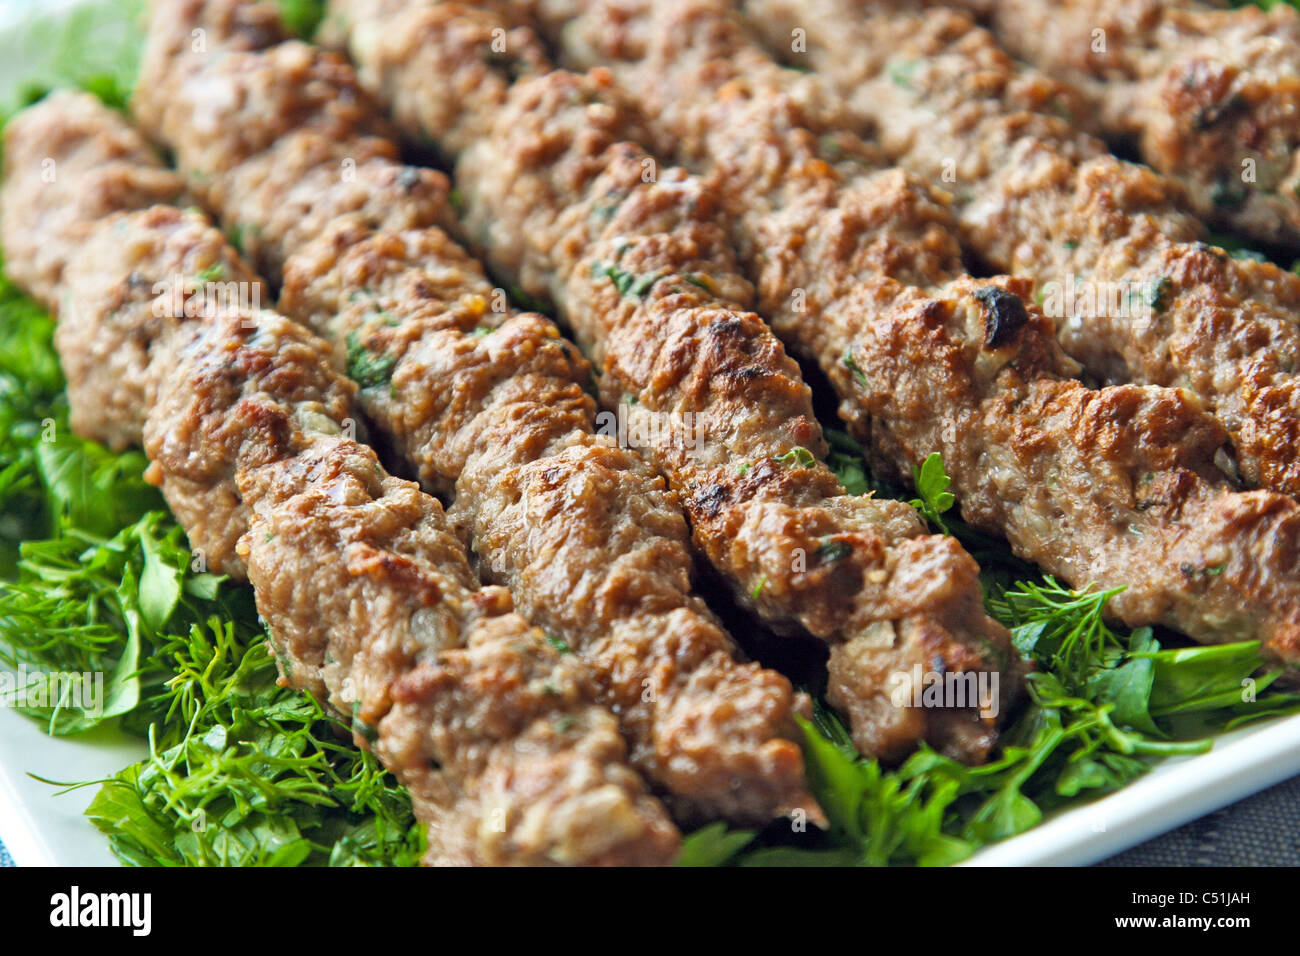 Arabic food kebab and kofta stock photo royalty free for Arabic cuisine food